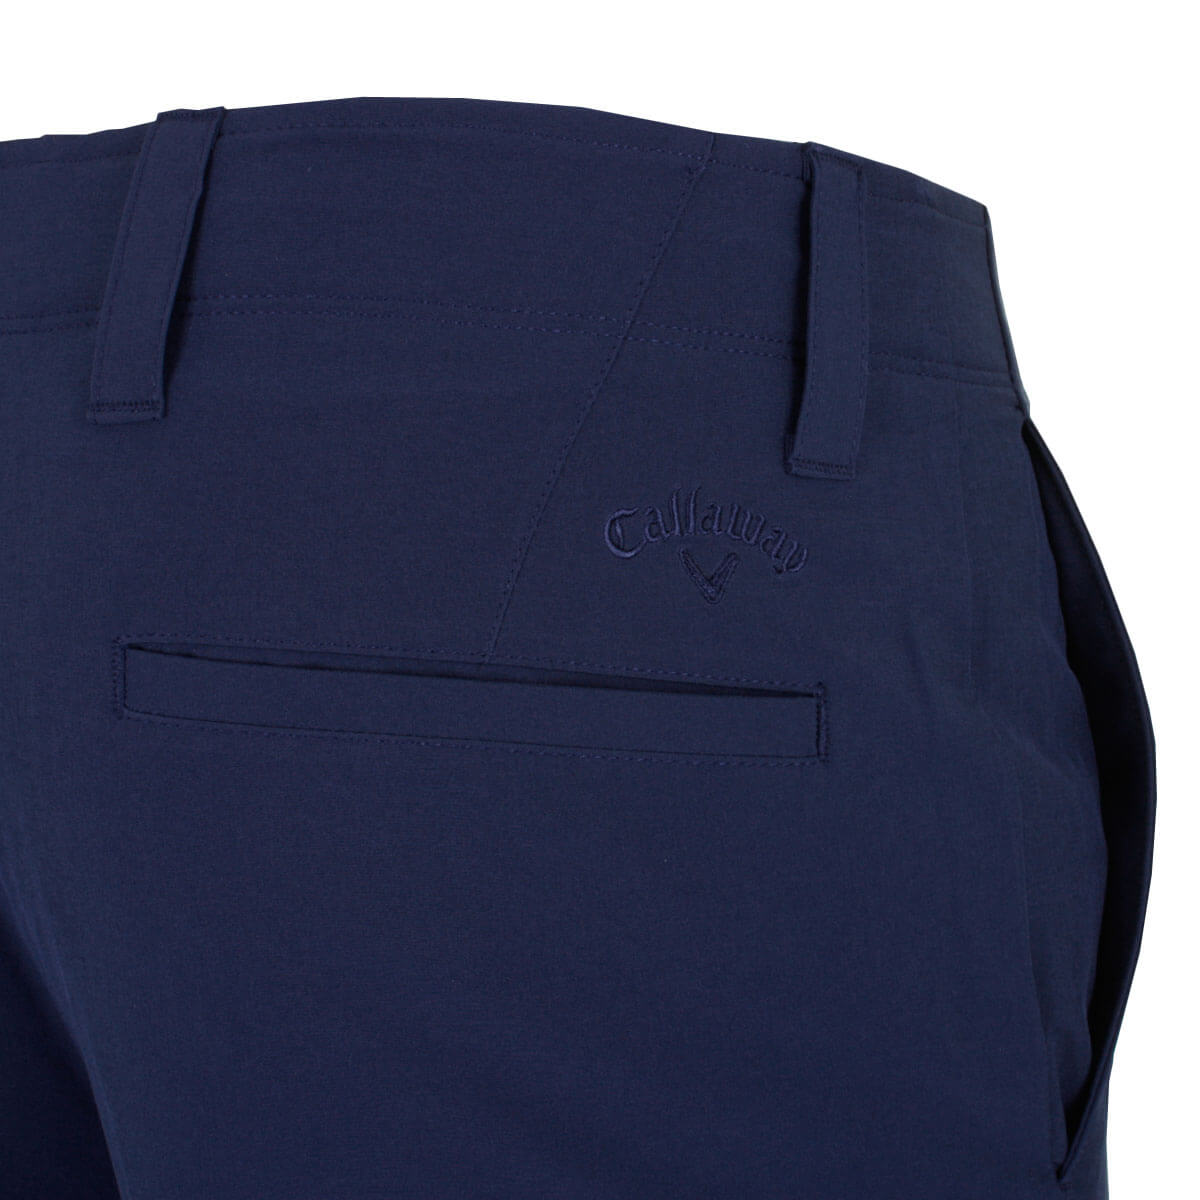 Callaway-Mens-2019-Chev-Tech-II-Lightweight-Stretch-Golf-Trousers-28-OFF-RRP thumbnail 13